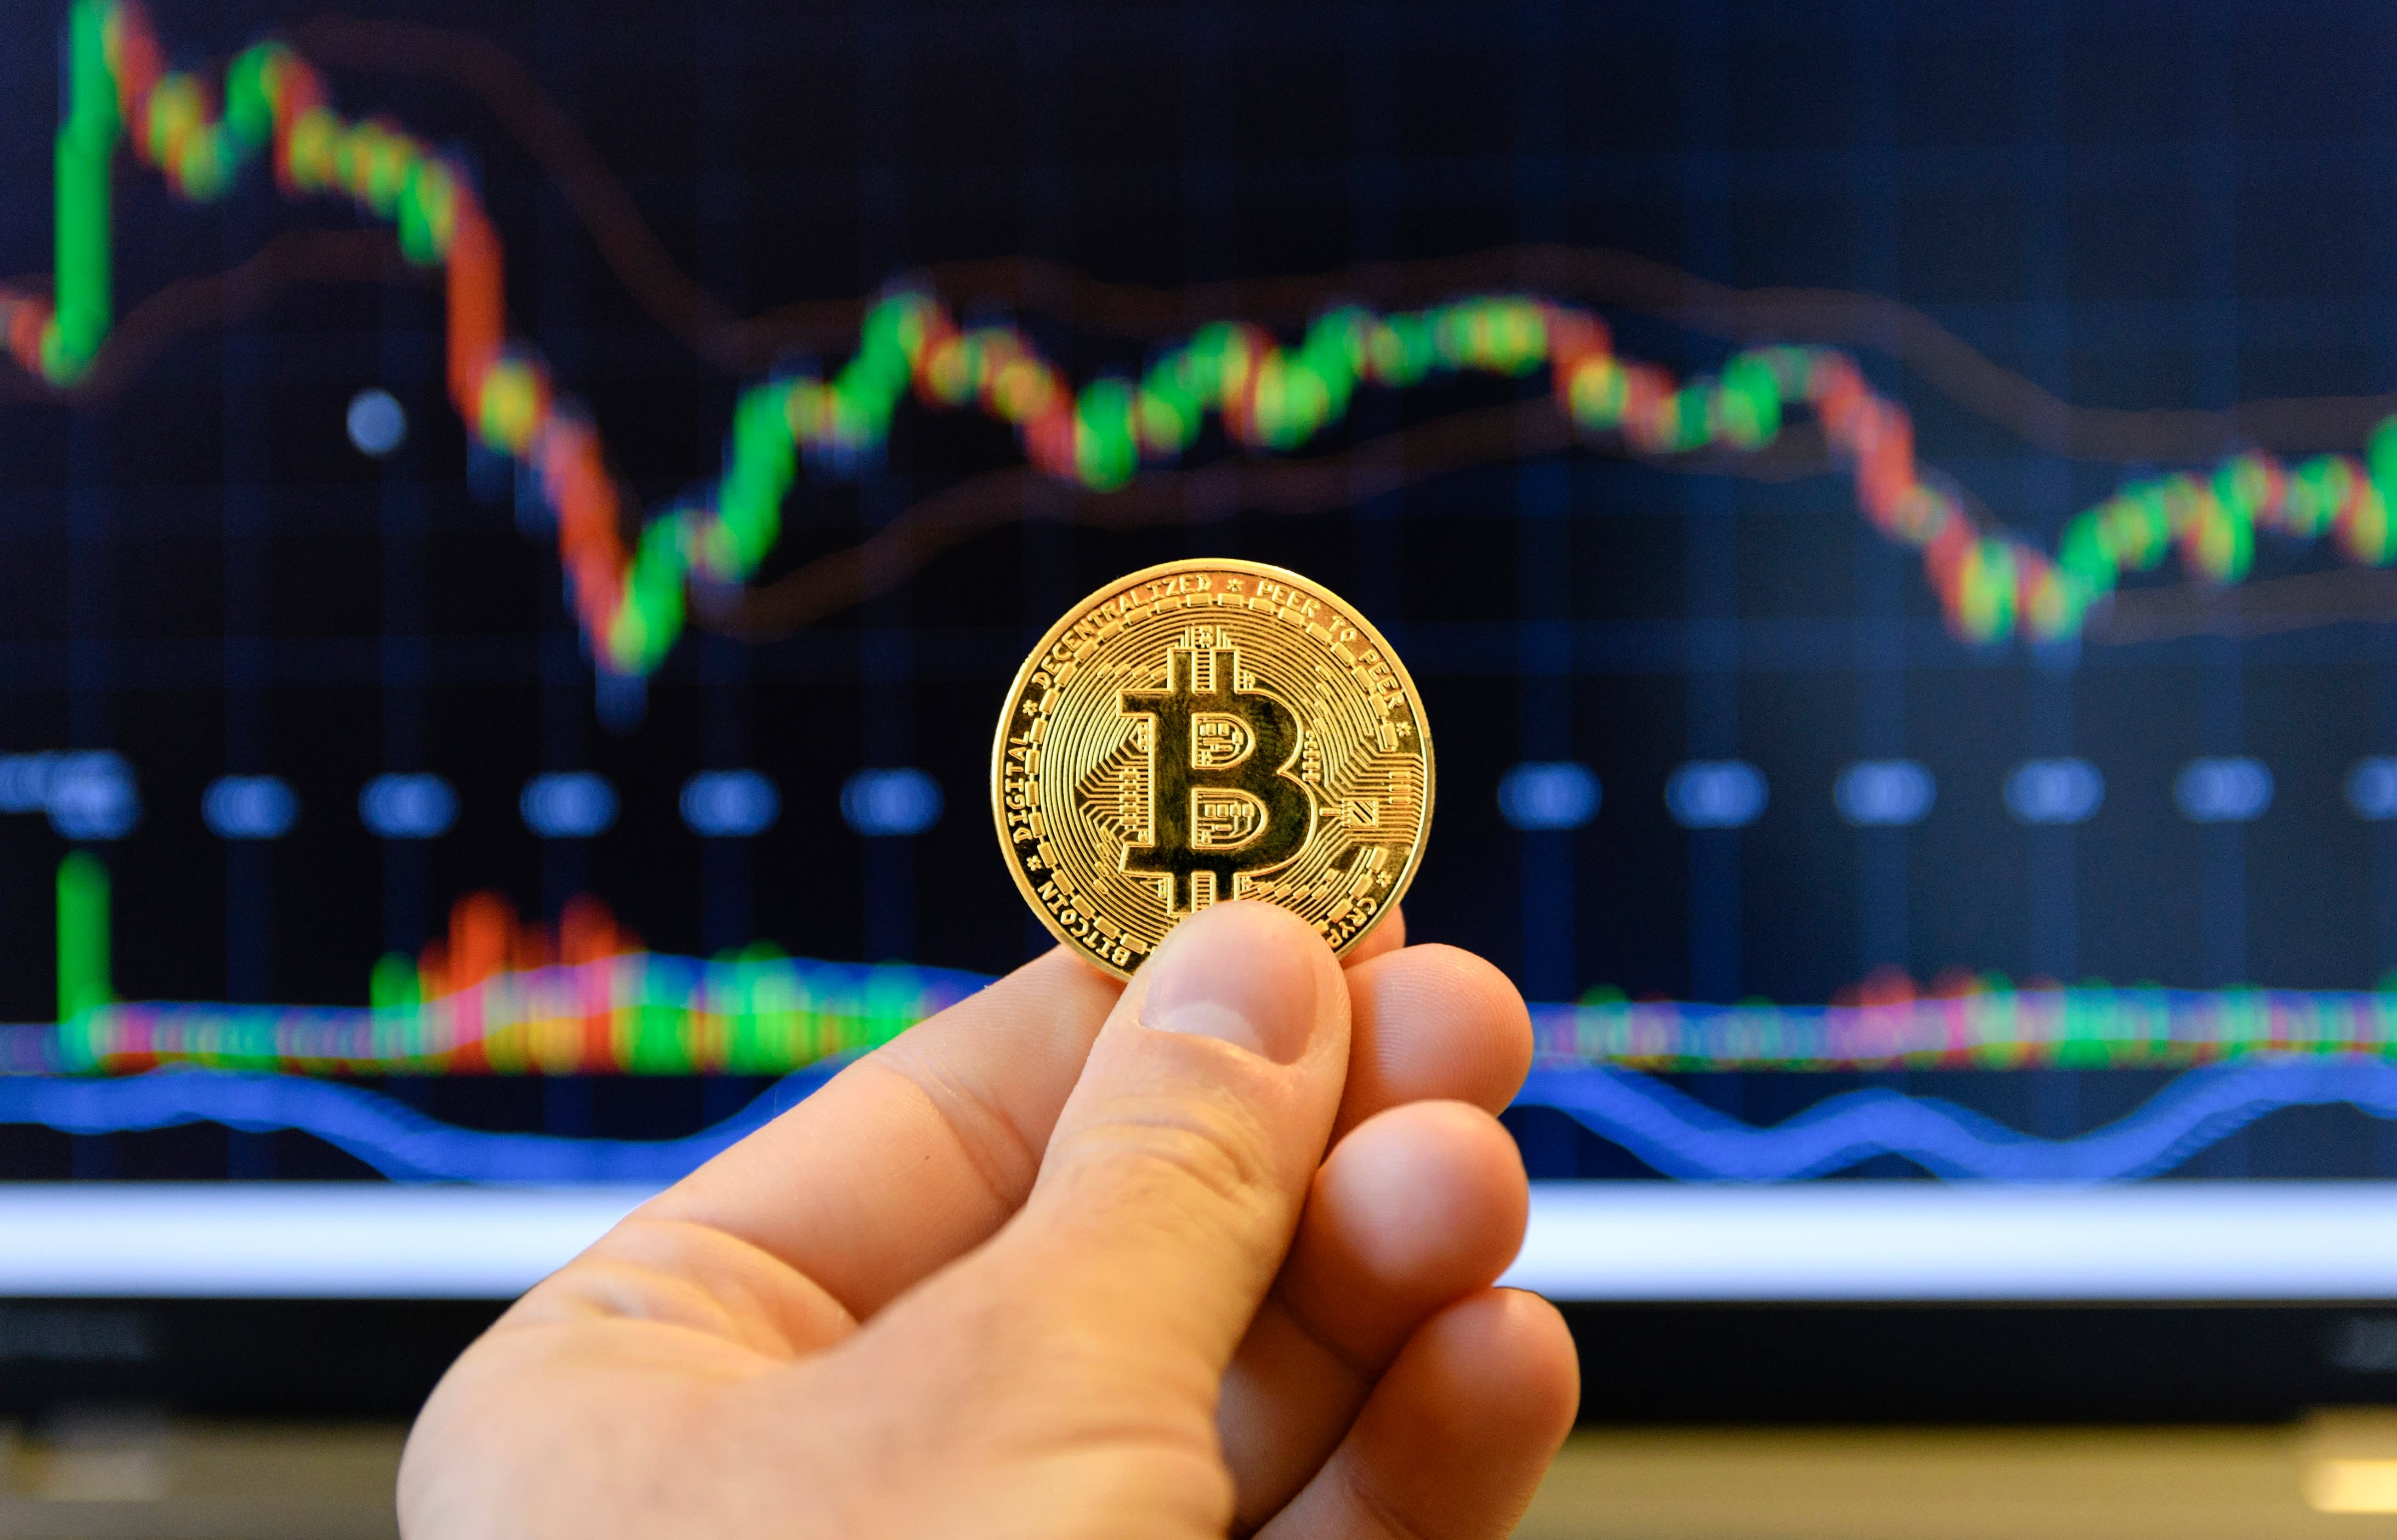 Bitcoin is rallying above $57,000 and 5 other things that happened in crypto this past week